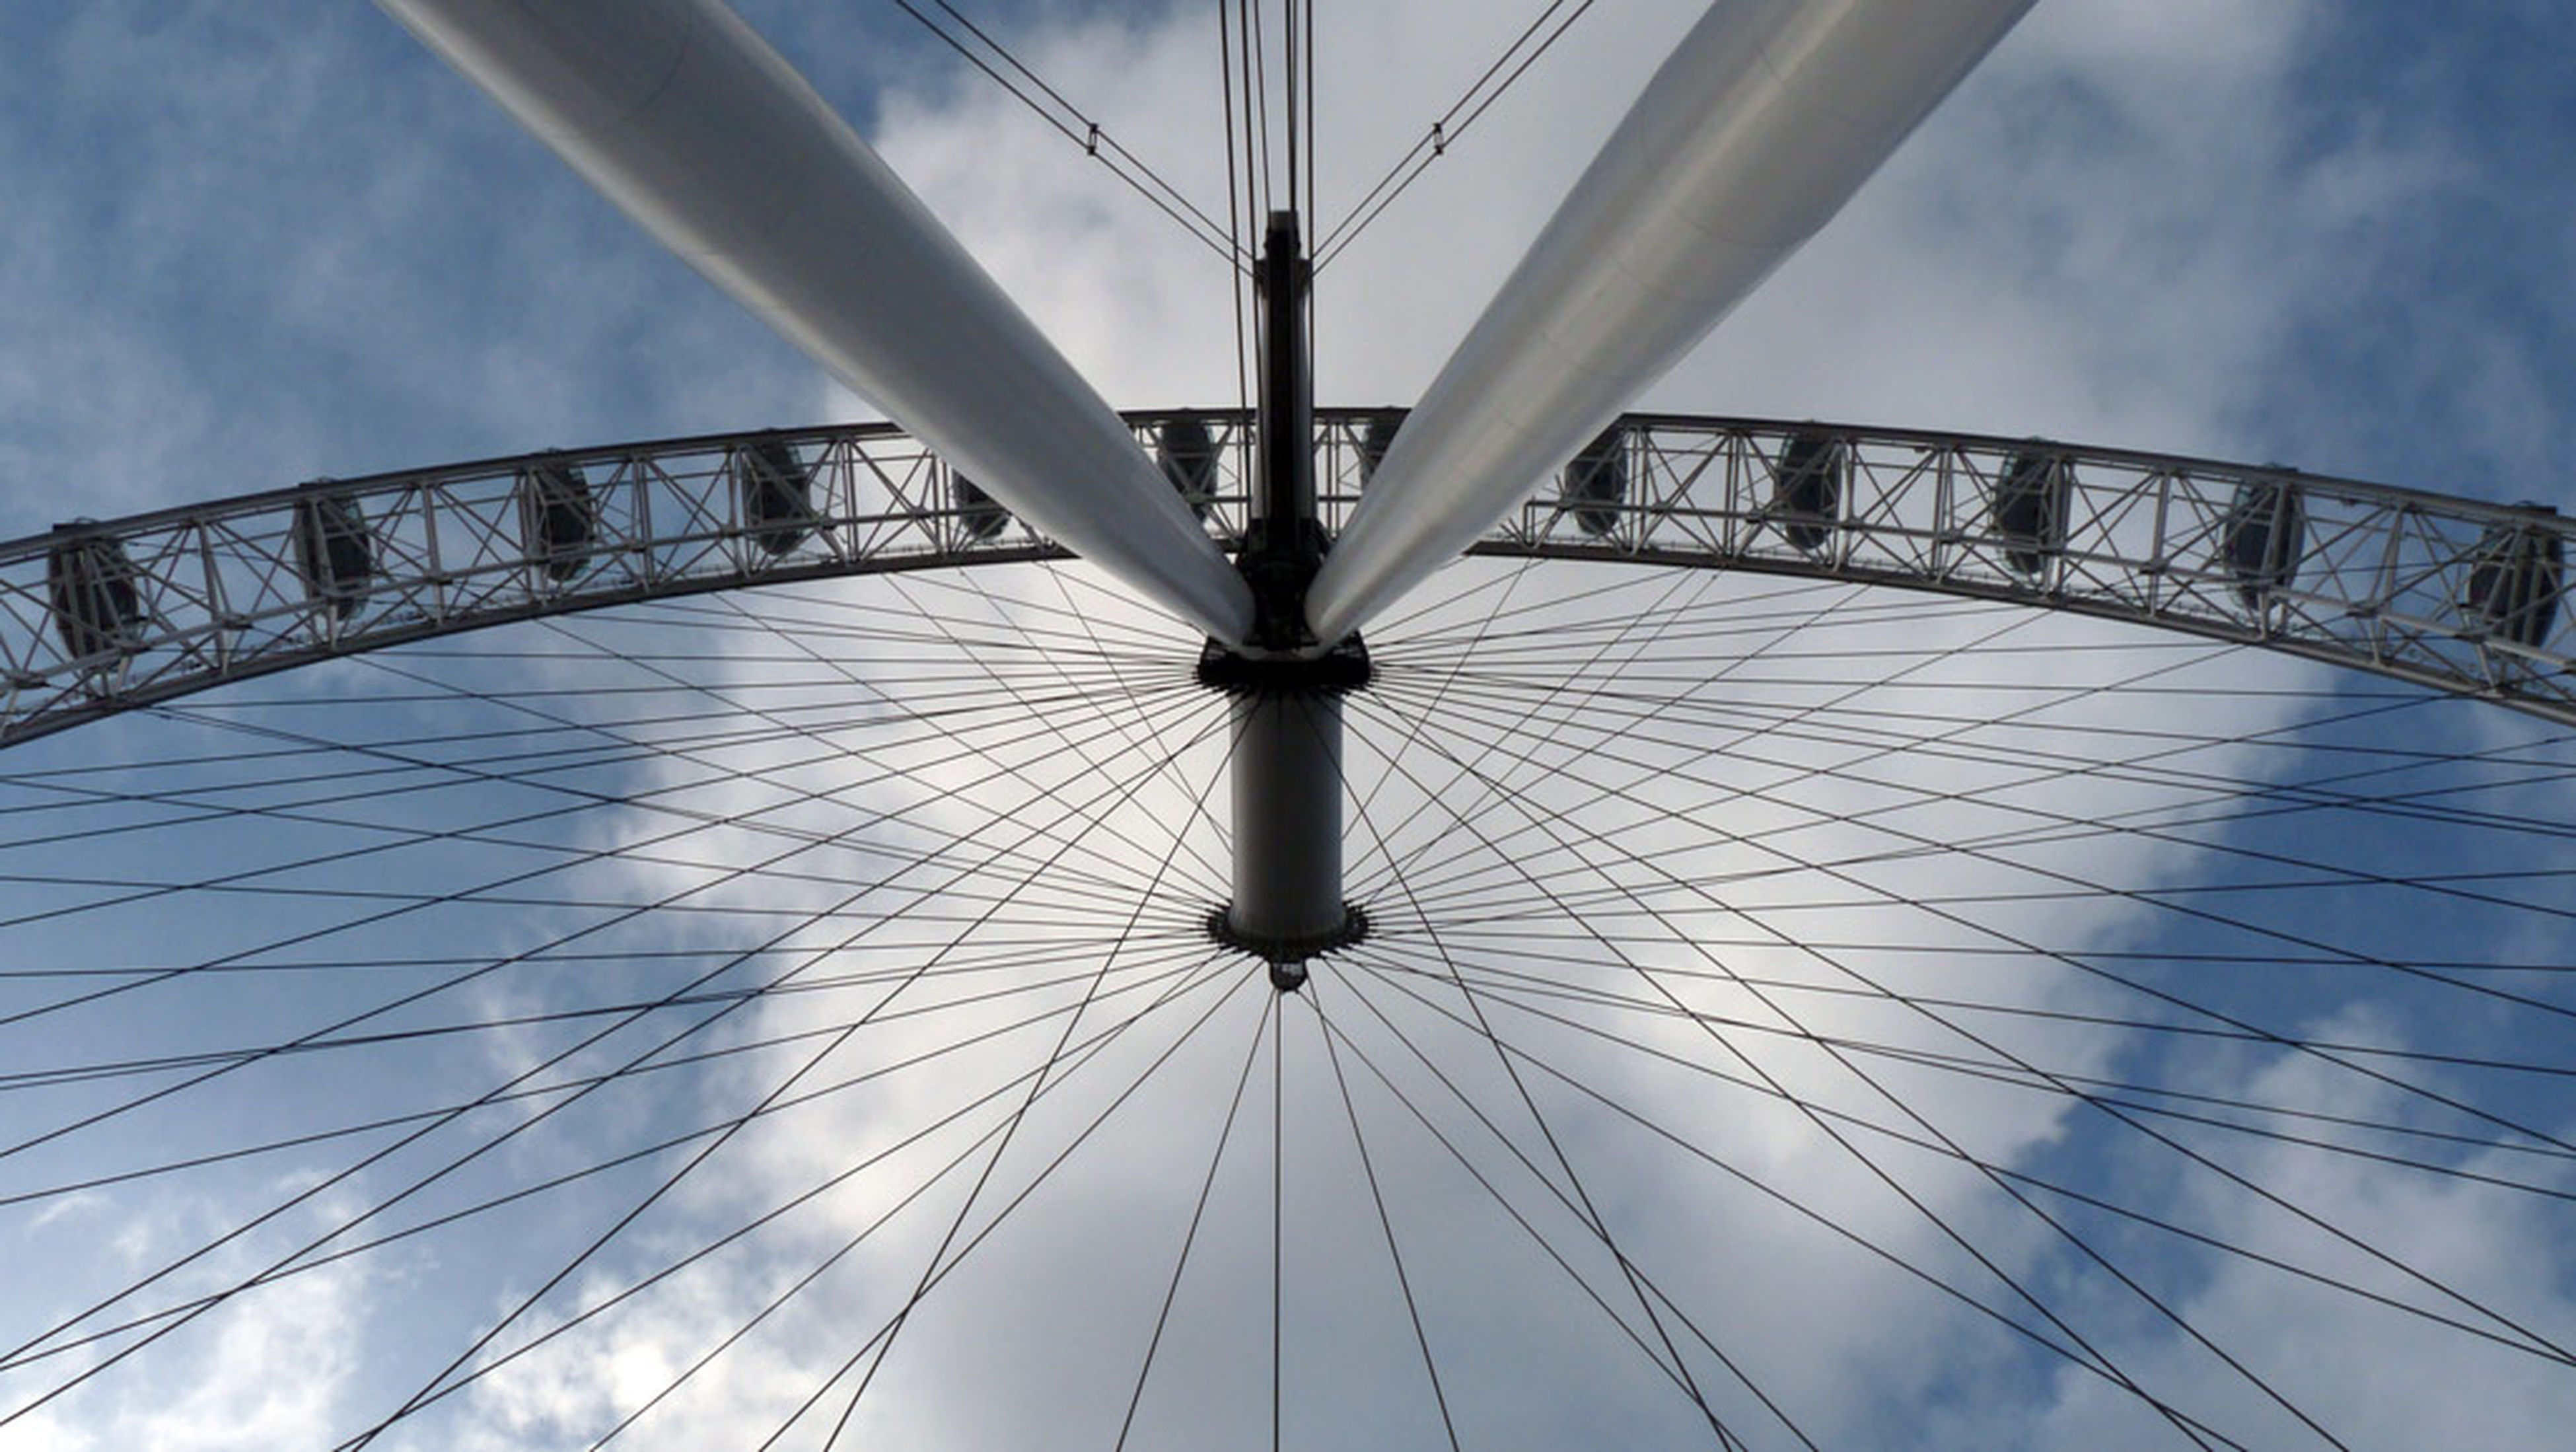 Symmetrical London Eye Right Between The Legs Looking Up